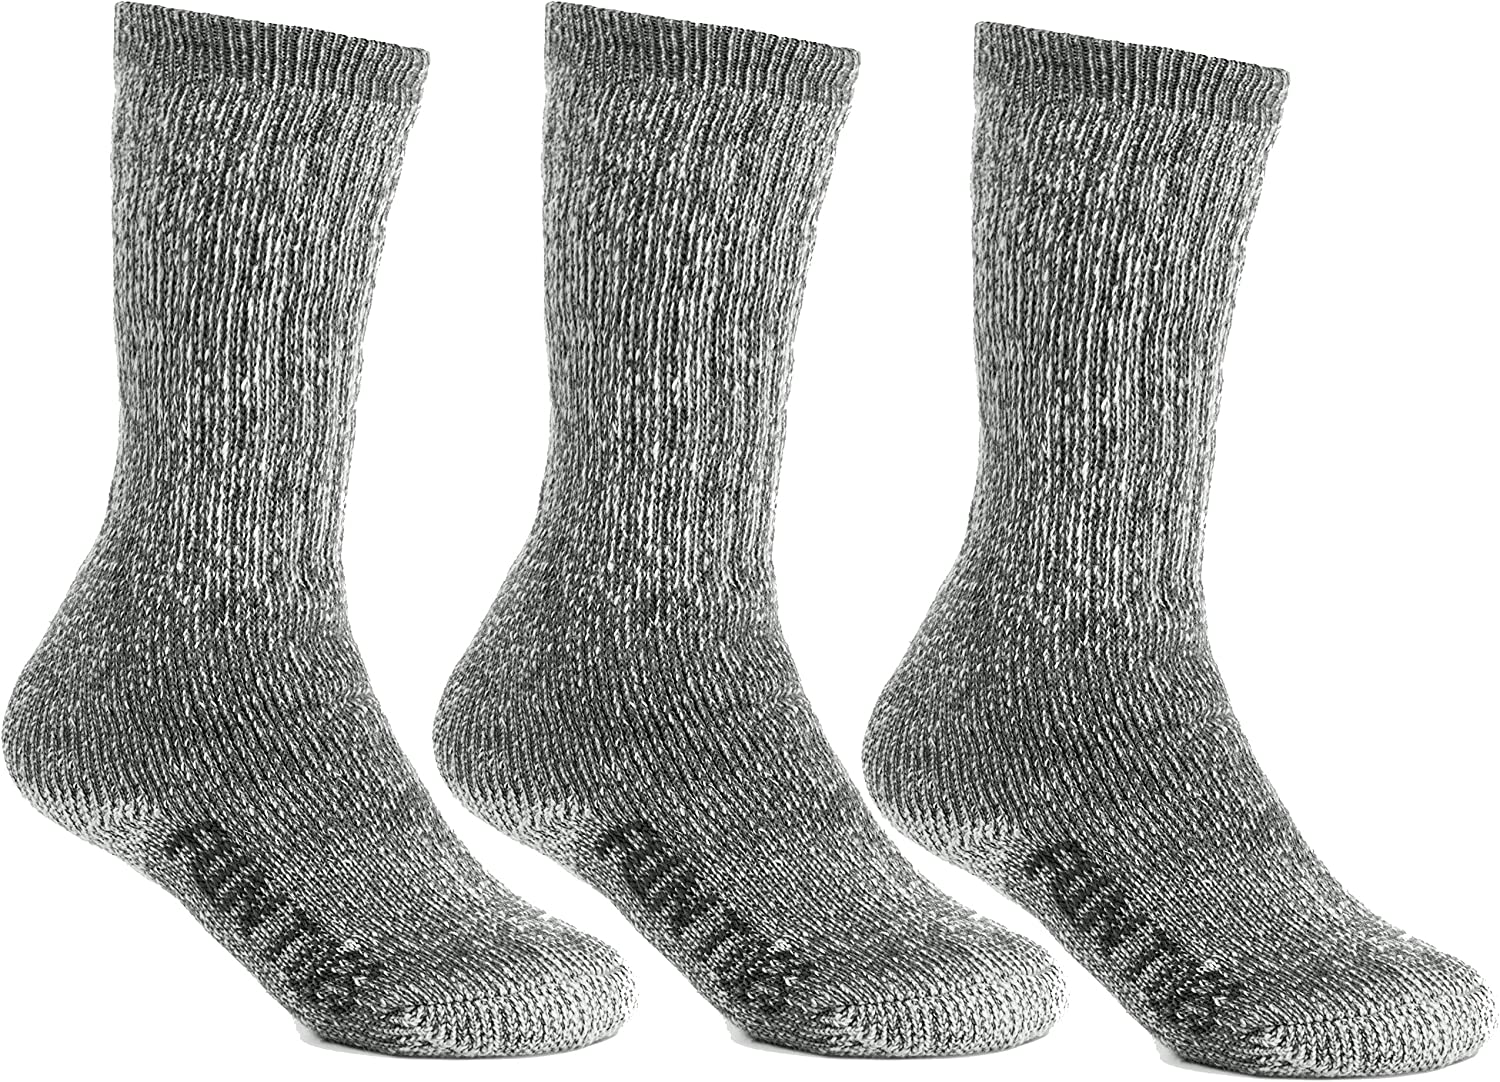 MERIWOOL Merino Wool Kids Hiking Socks for Children 3 Pairs